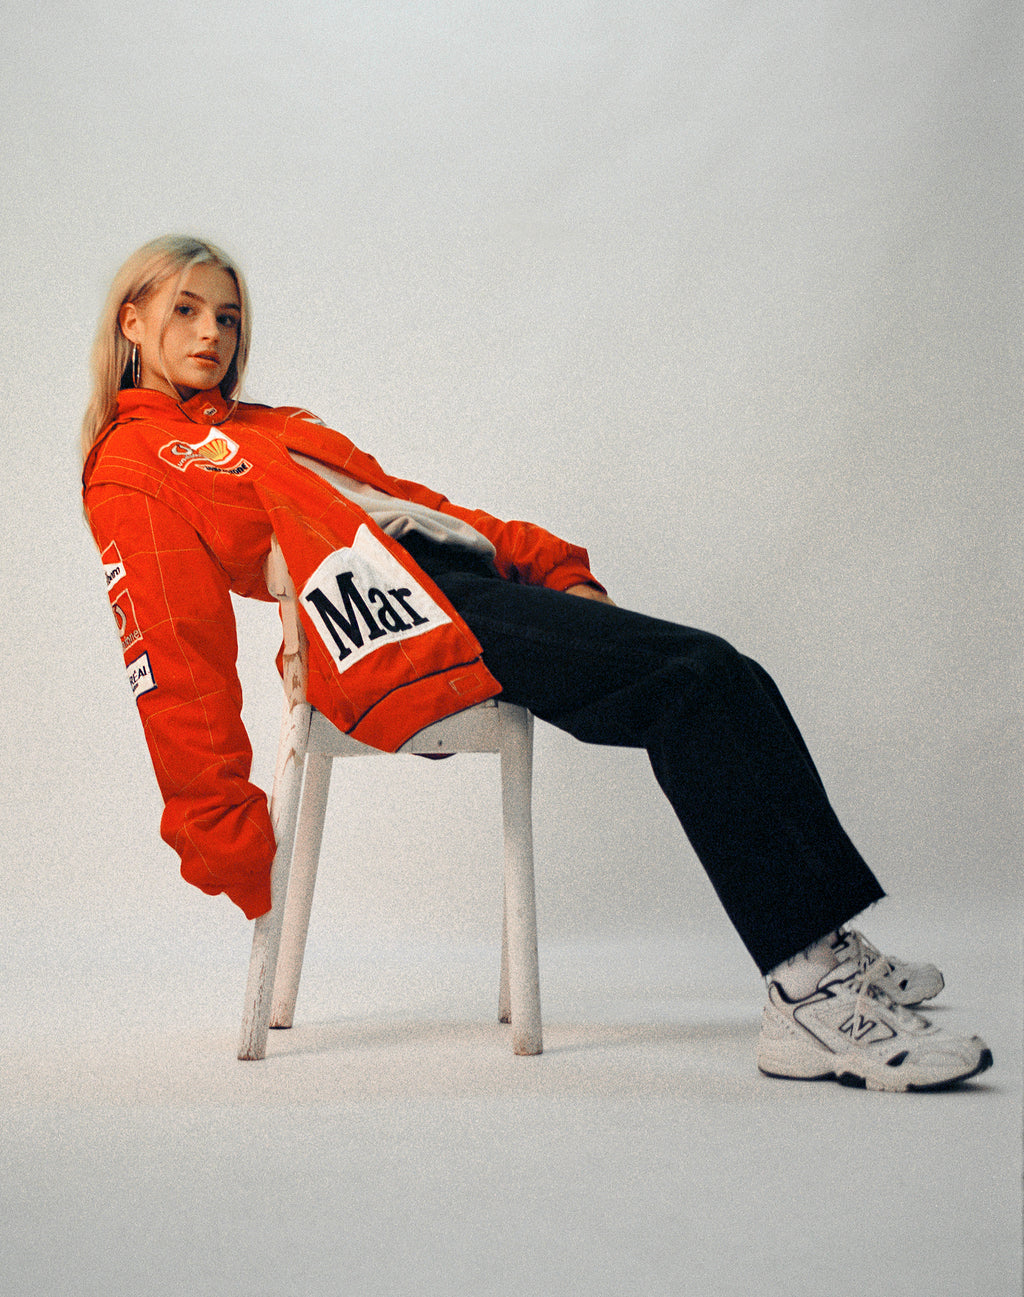 MARLBORO RED MOTOCROSS JACKET